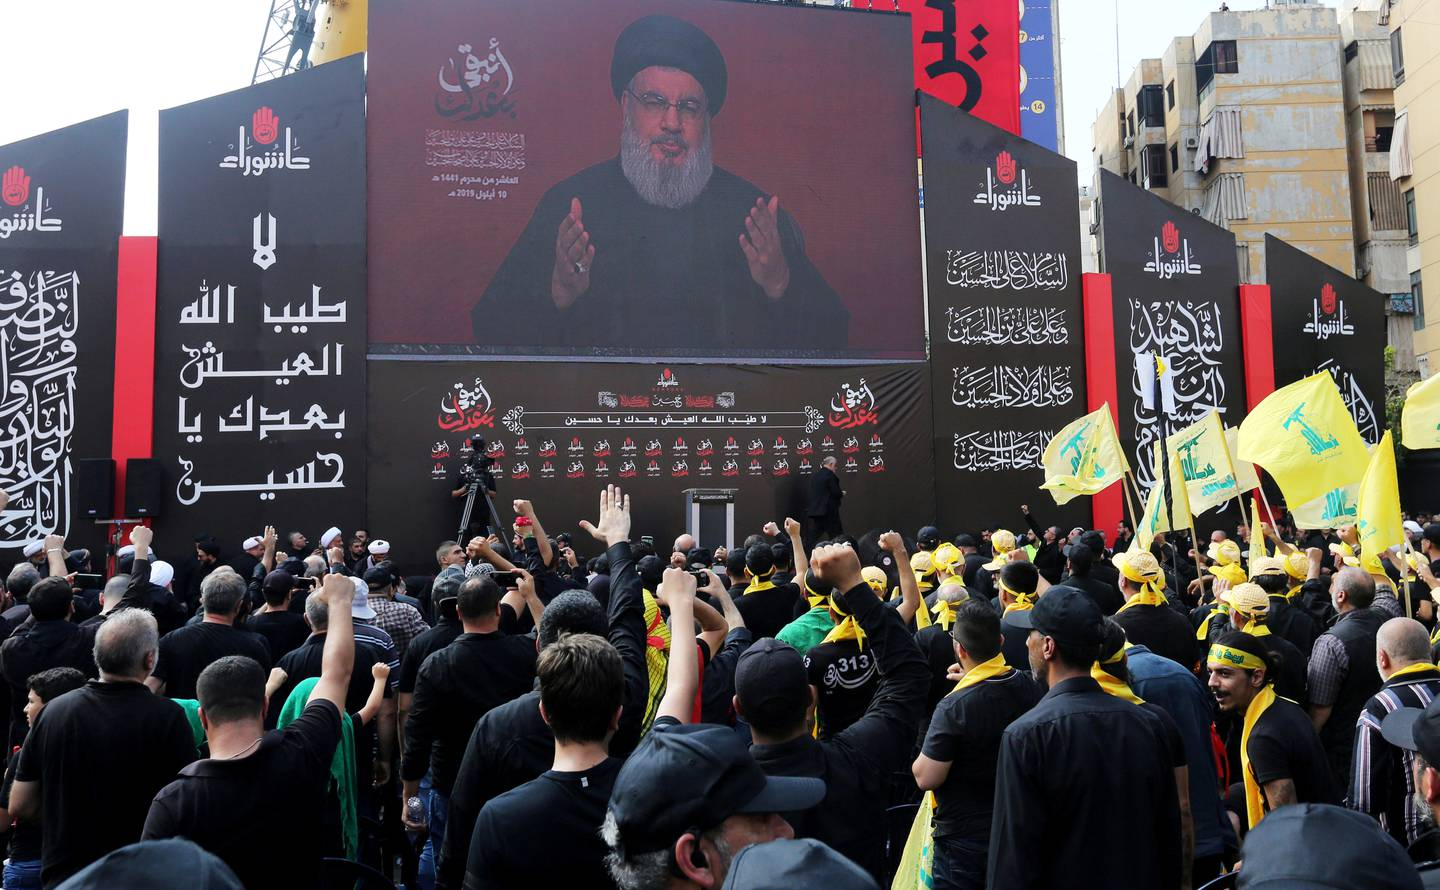 FILE PHOTO: Lebanon's Hezbollah leader Sayyed Hassan Nasrallah gestures as he addresses his supporters via a screen during the religious procession to mark the Shi'ite Ashura ceremony, in Beirut, Lebanon September 10, 2019. REUTERS/Aziz Taher -/File Photo